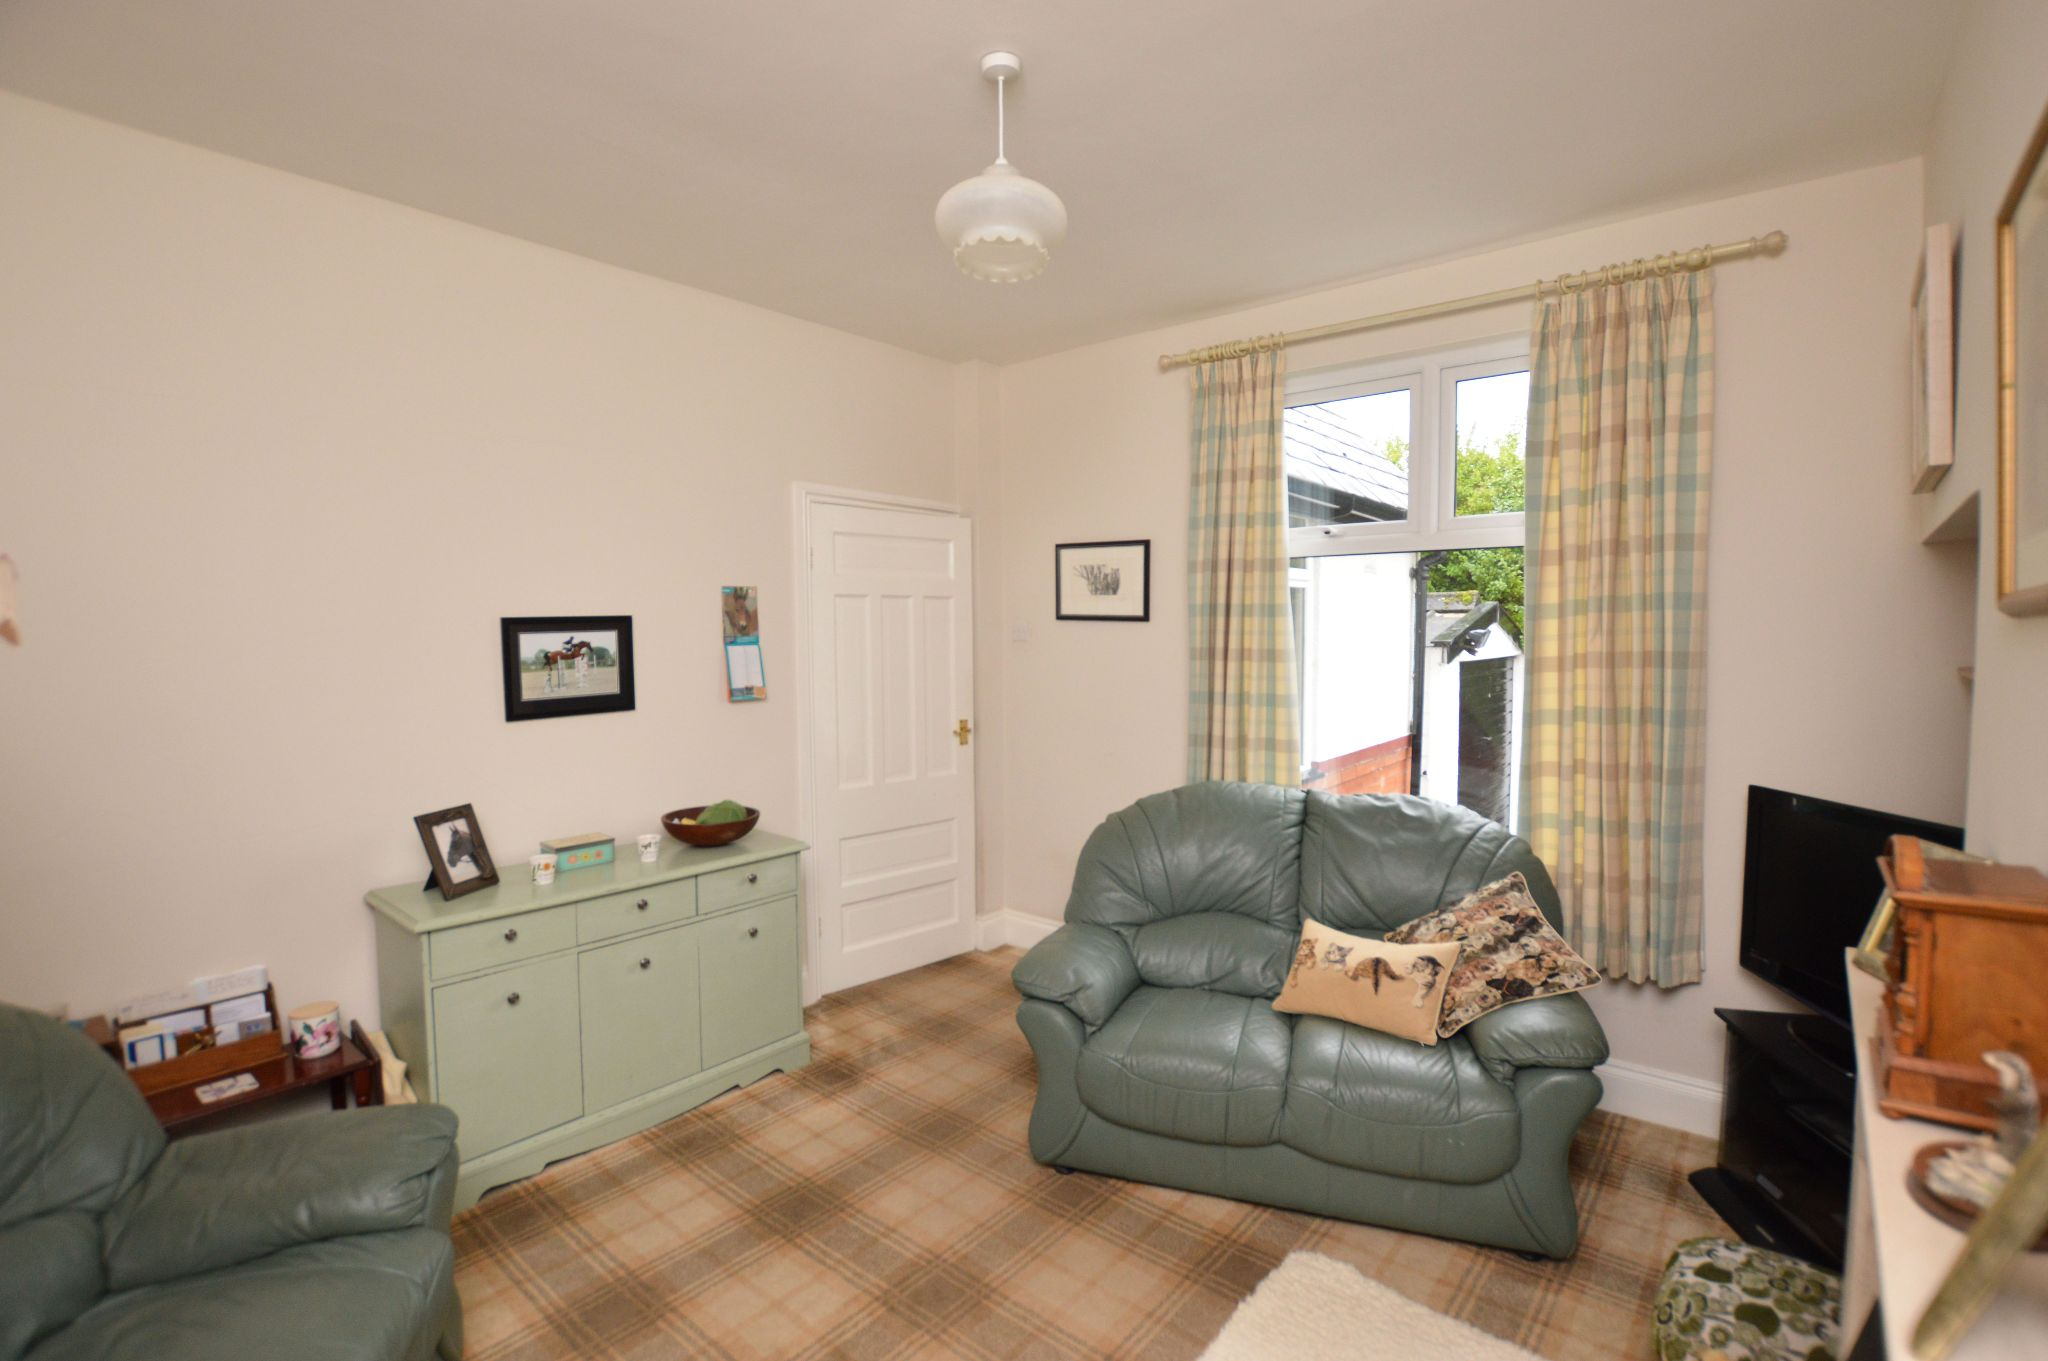 4 bedroom detached house For Sale in Abergele - Reception Room